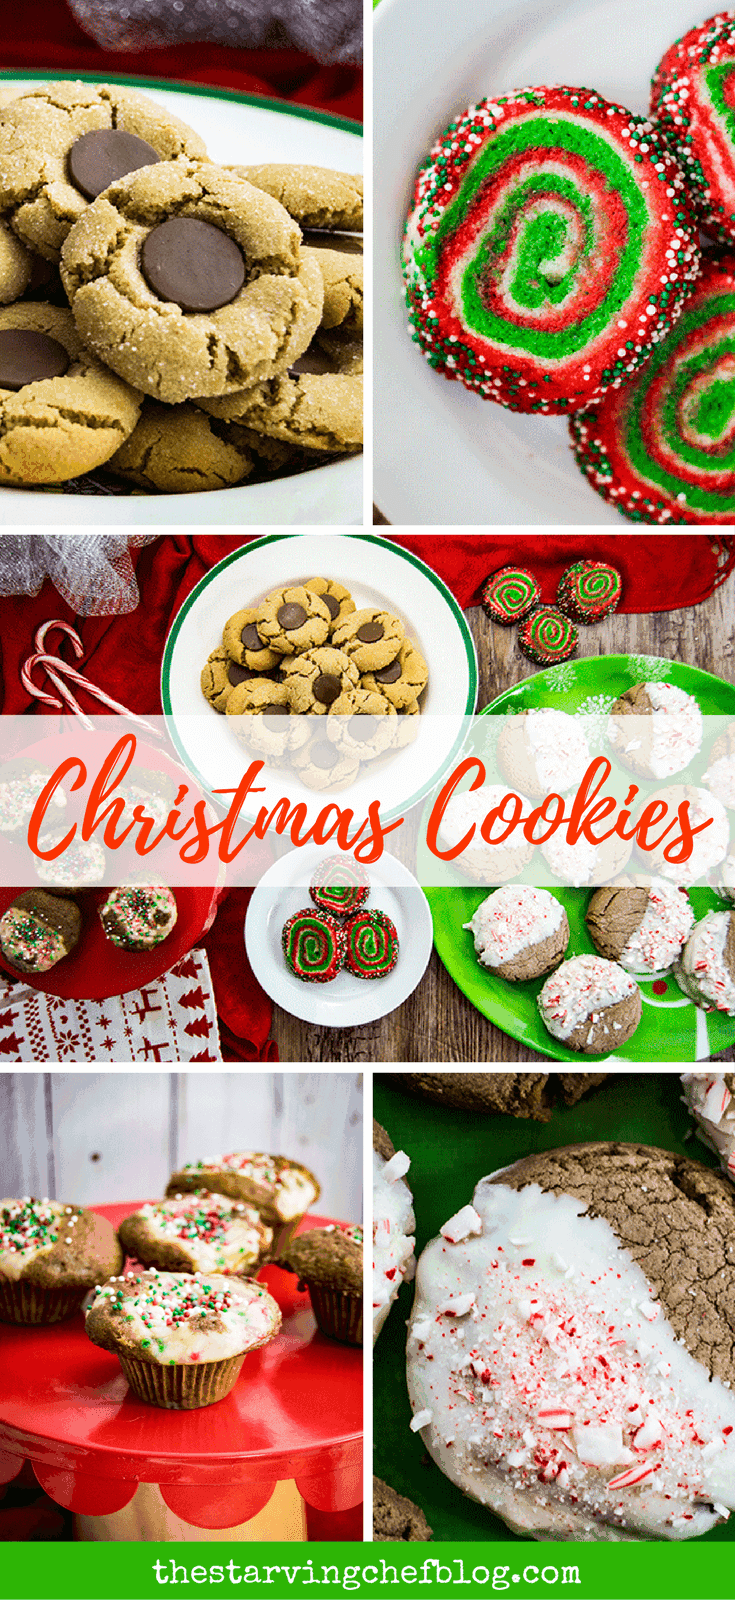 Last Minute Christmas Cookies for Santa Claus | The Starving Chef Blog